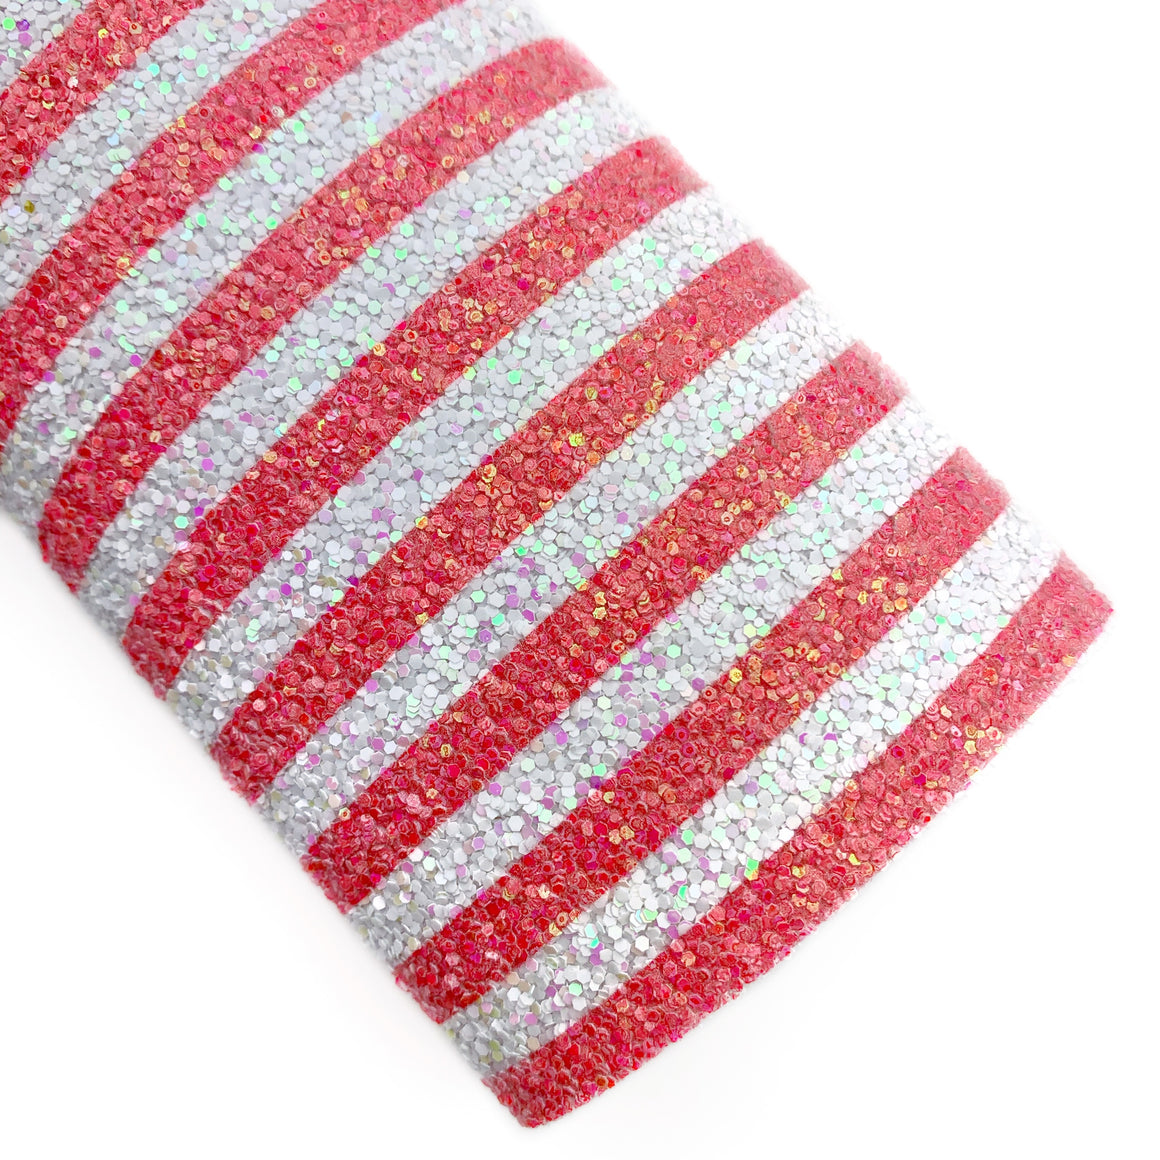 Watermelon Stripes Iridescent Chunky Glitter